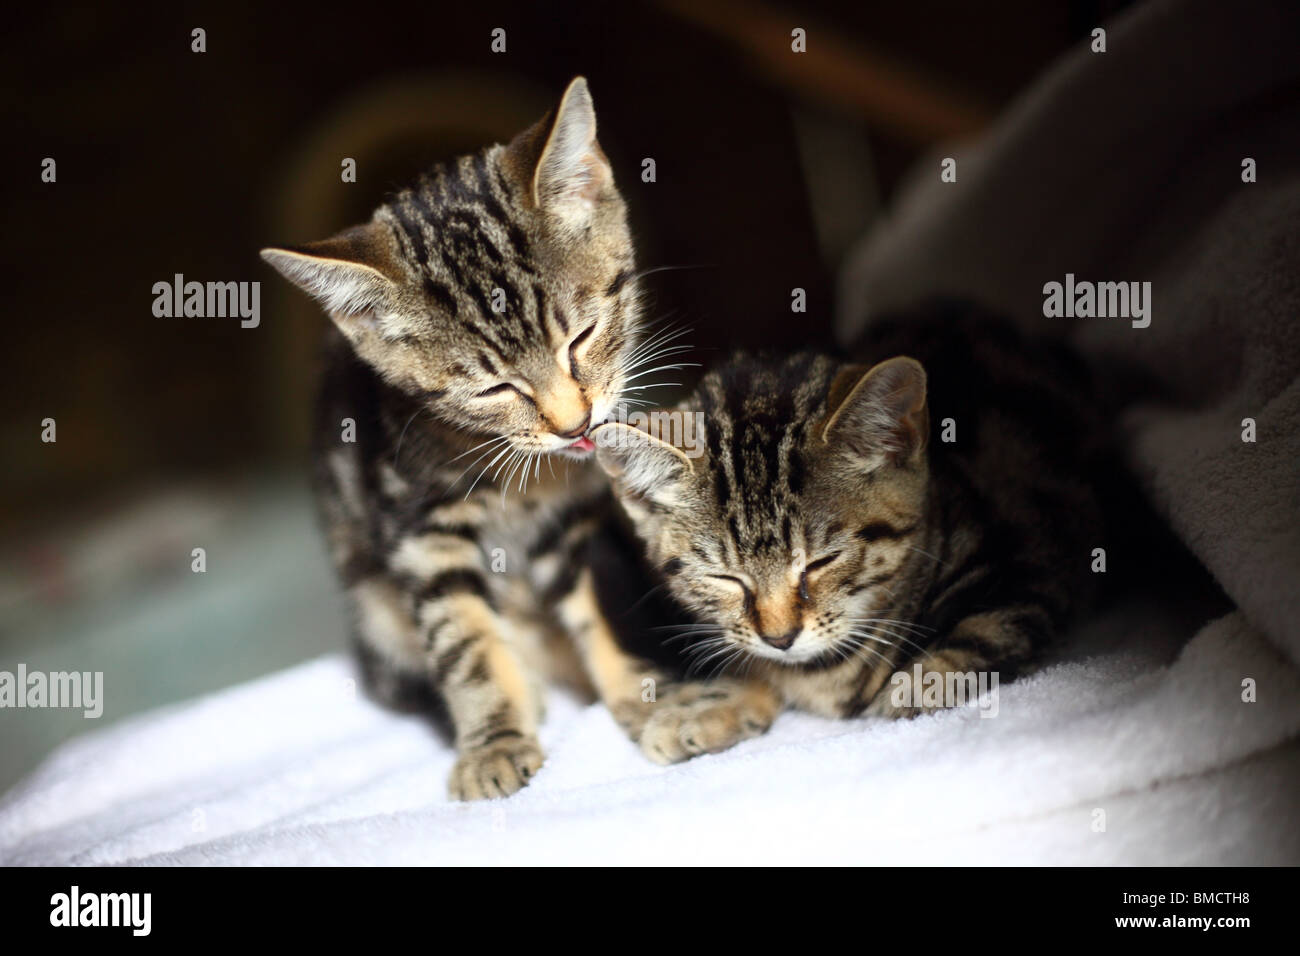 Two young kittens washing each other and sleeping. - Stock Image